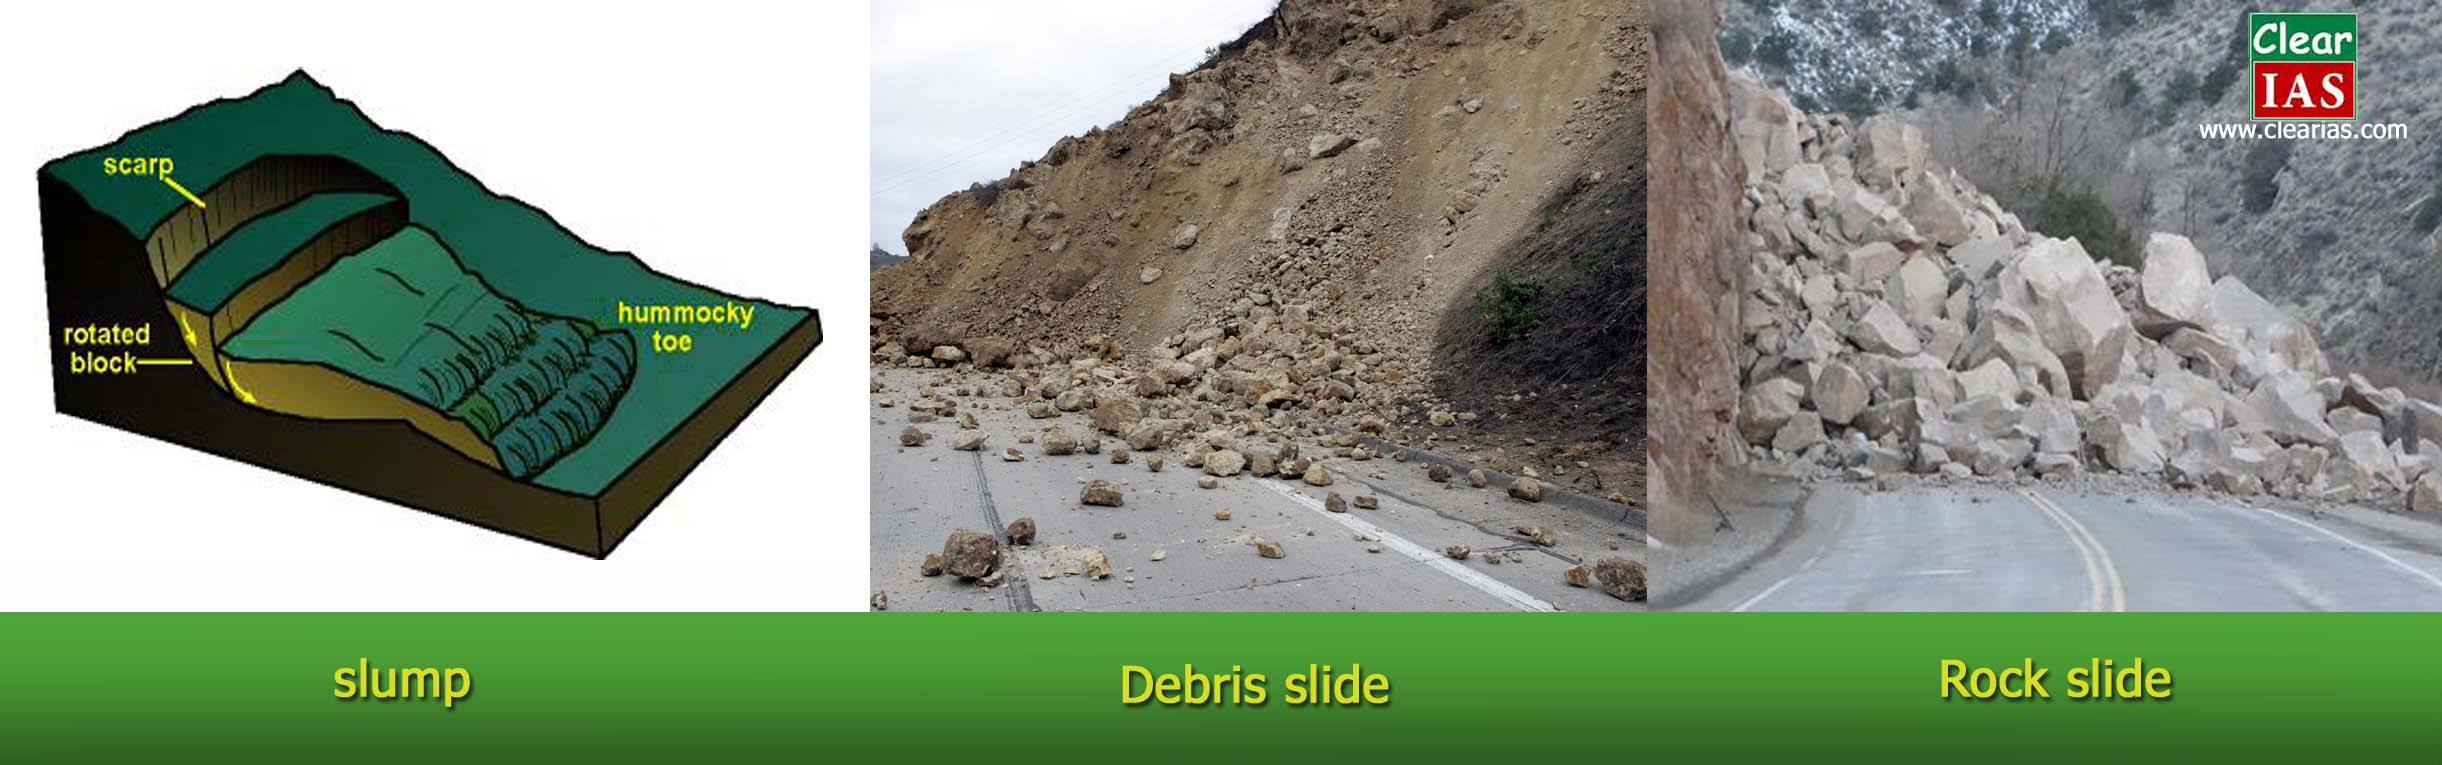 slump, debris slide, rock slide - types of landslides